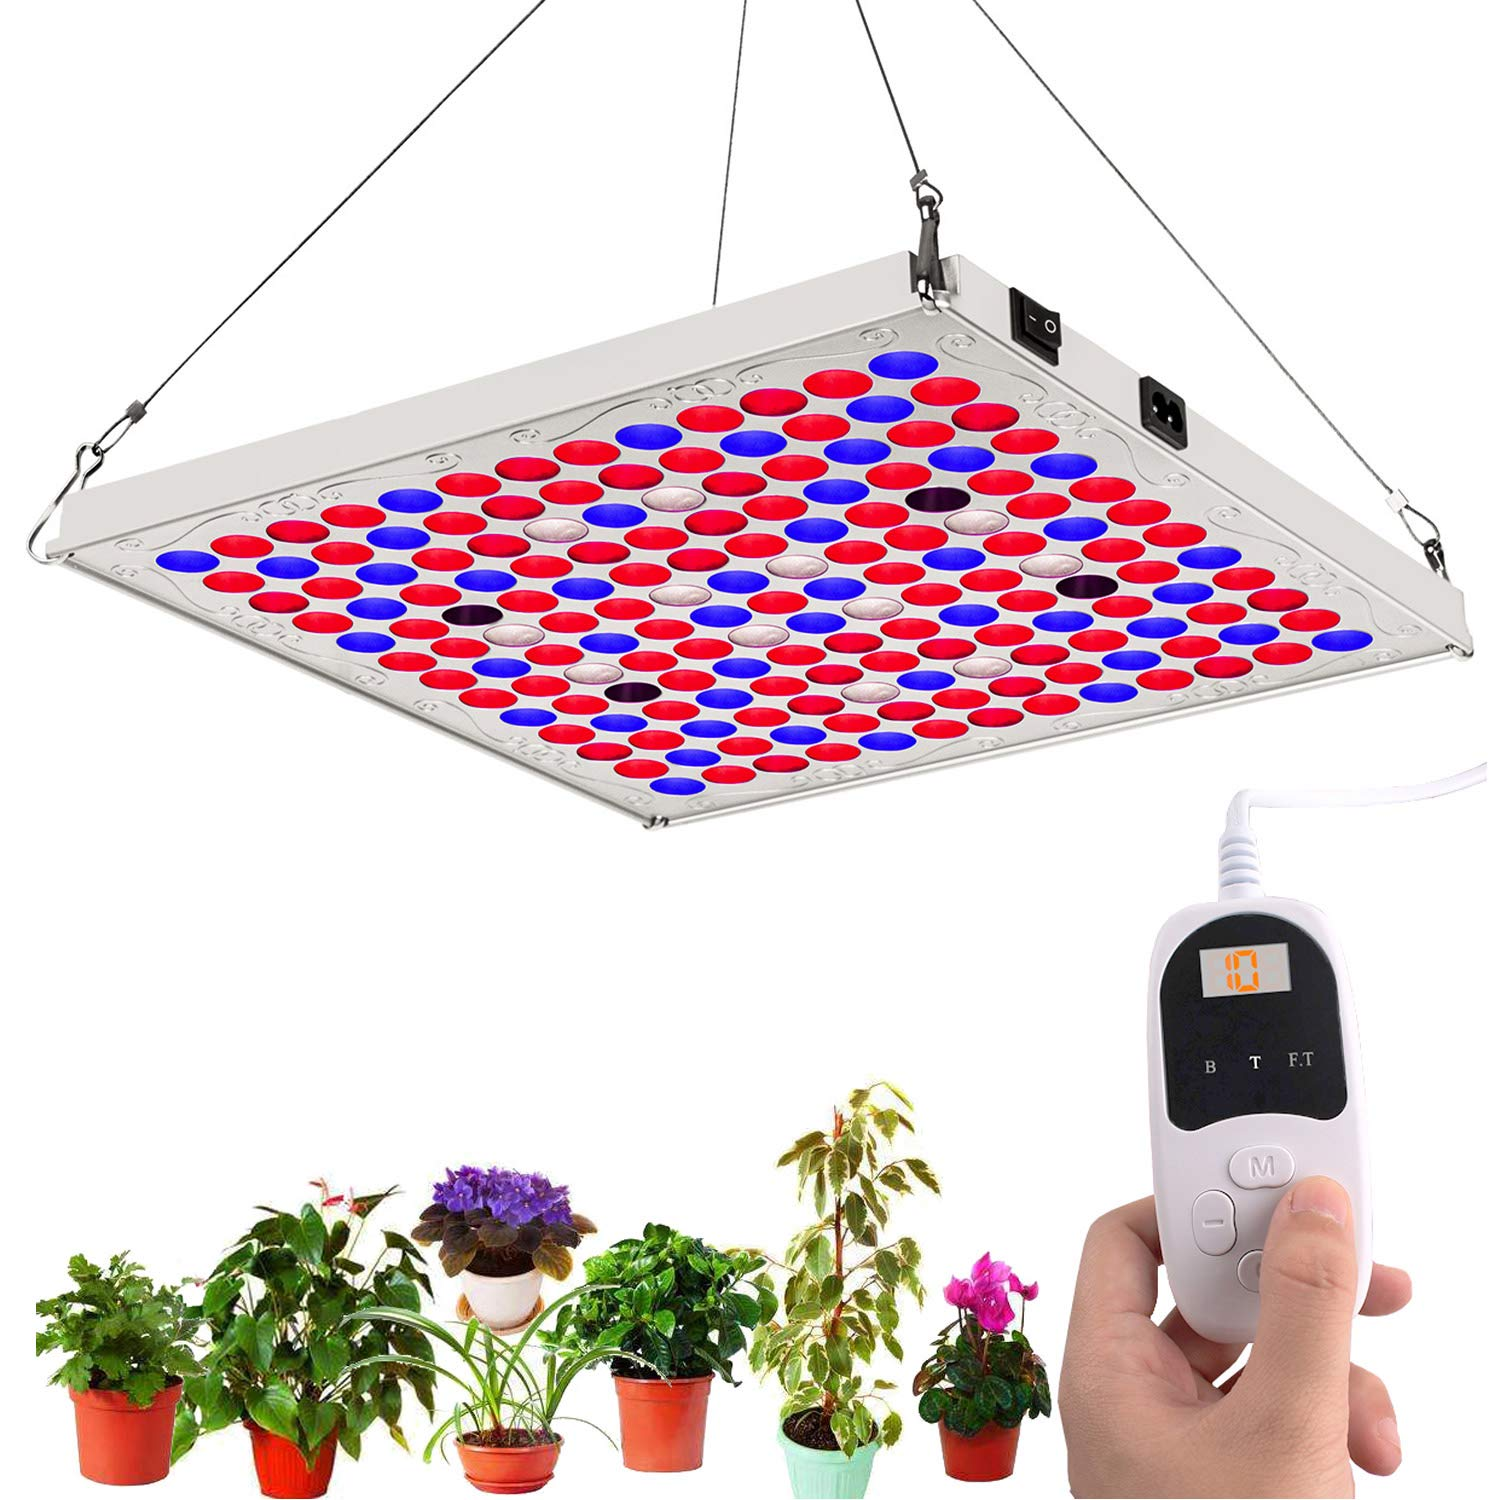 TOPLANET LED Grow Lights for Indoor Plants with Timer, 75W Full Spectrum Plant Growing Lamp with IR Bulbs for Hydroponics Grow Box Greenhouse Veg and Flowers Seedlings Bloom